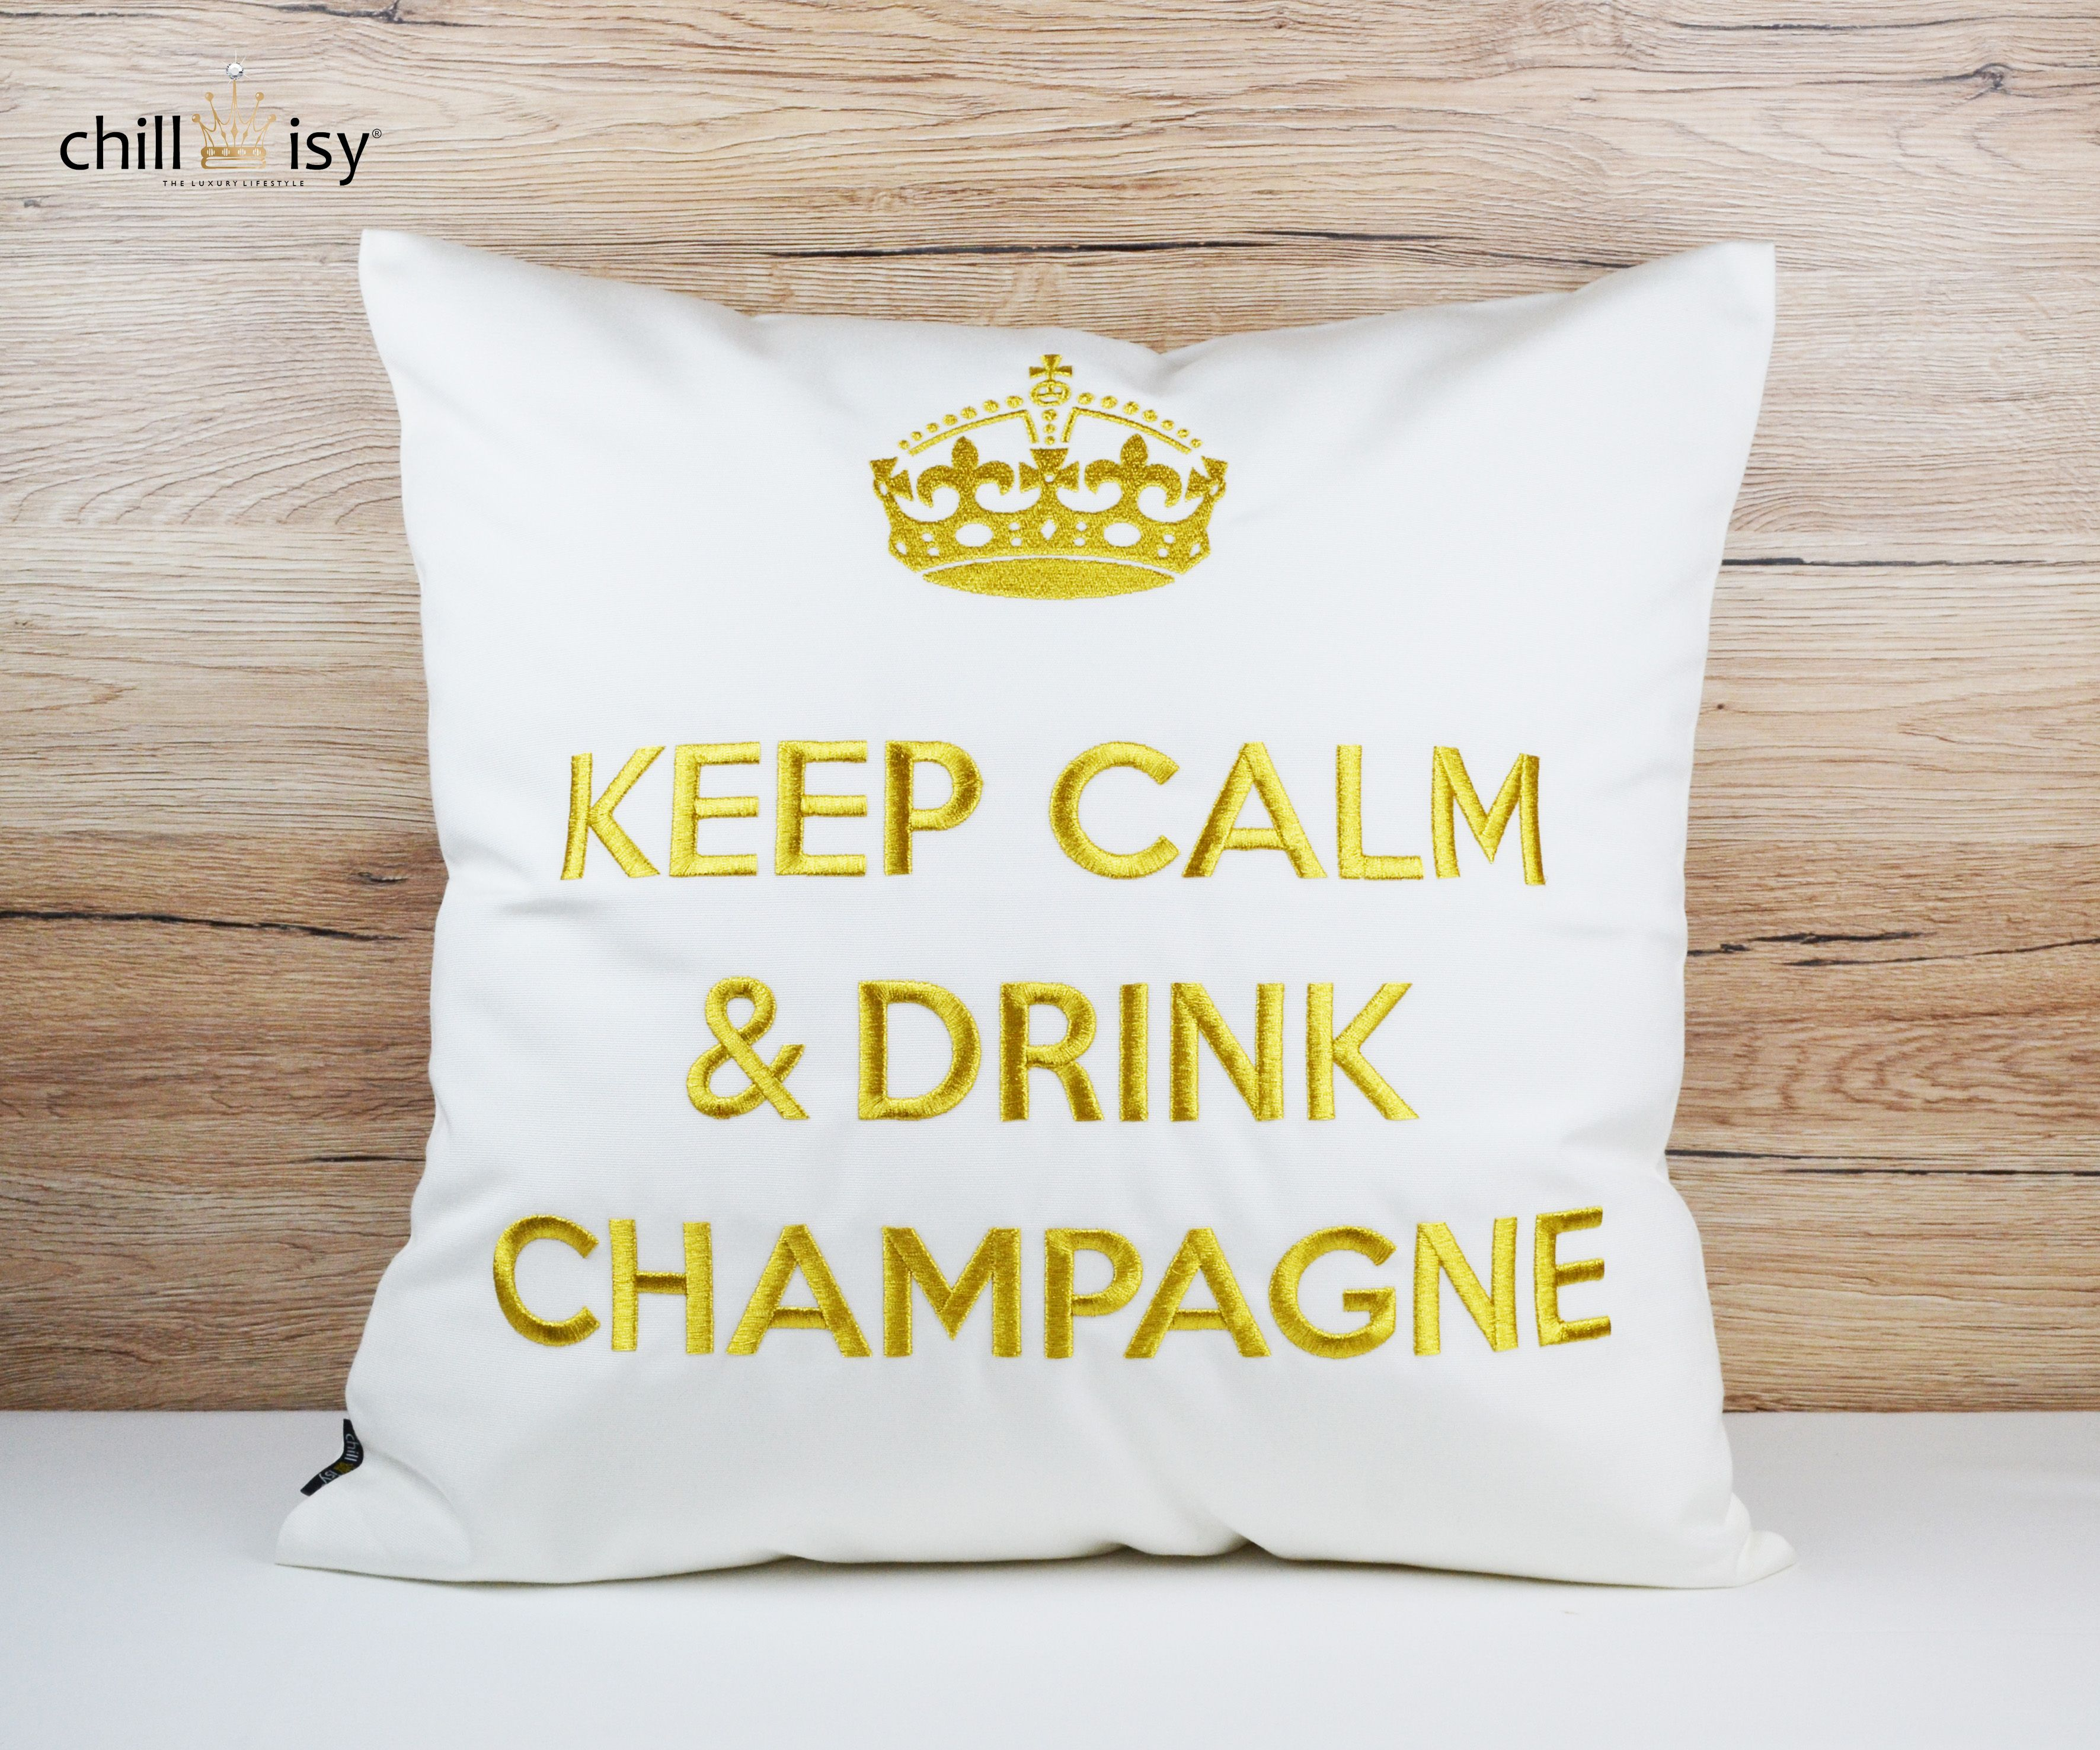 KEEP CALM & DRINK CHAMPAGNE weiß/gold kissen pillow by chillisy® http://amzn.to/1A0Bxv5